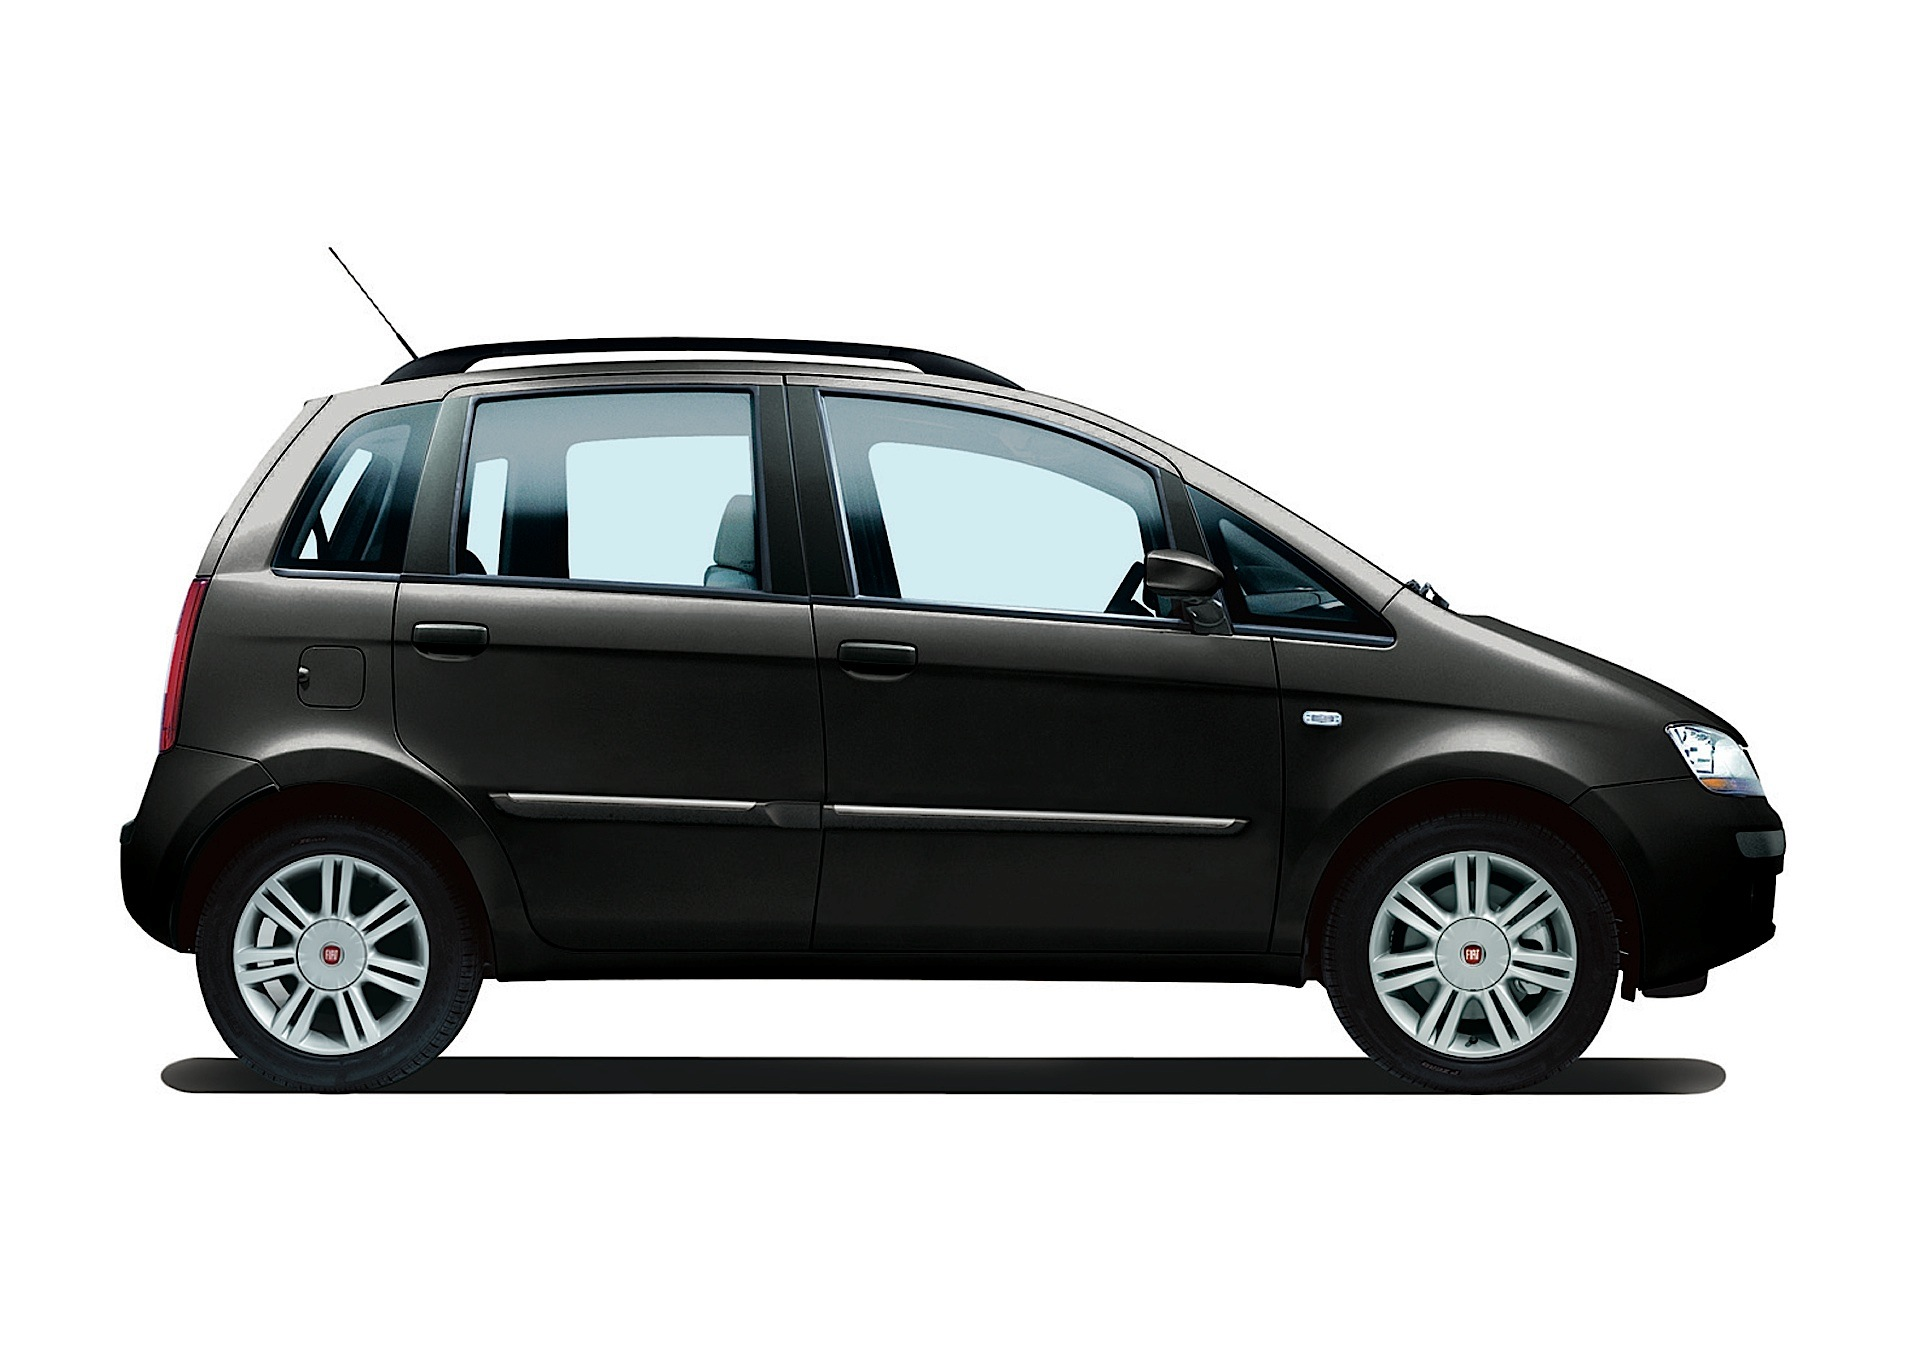 Fiat L Int further Fiat Idea additionally Concorde  pact Bett besides Fiat likewise Fiat Uno. on 2016 fiat 500